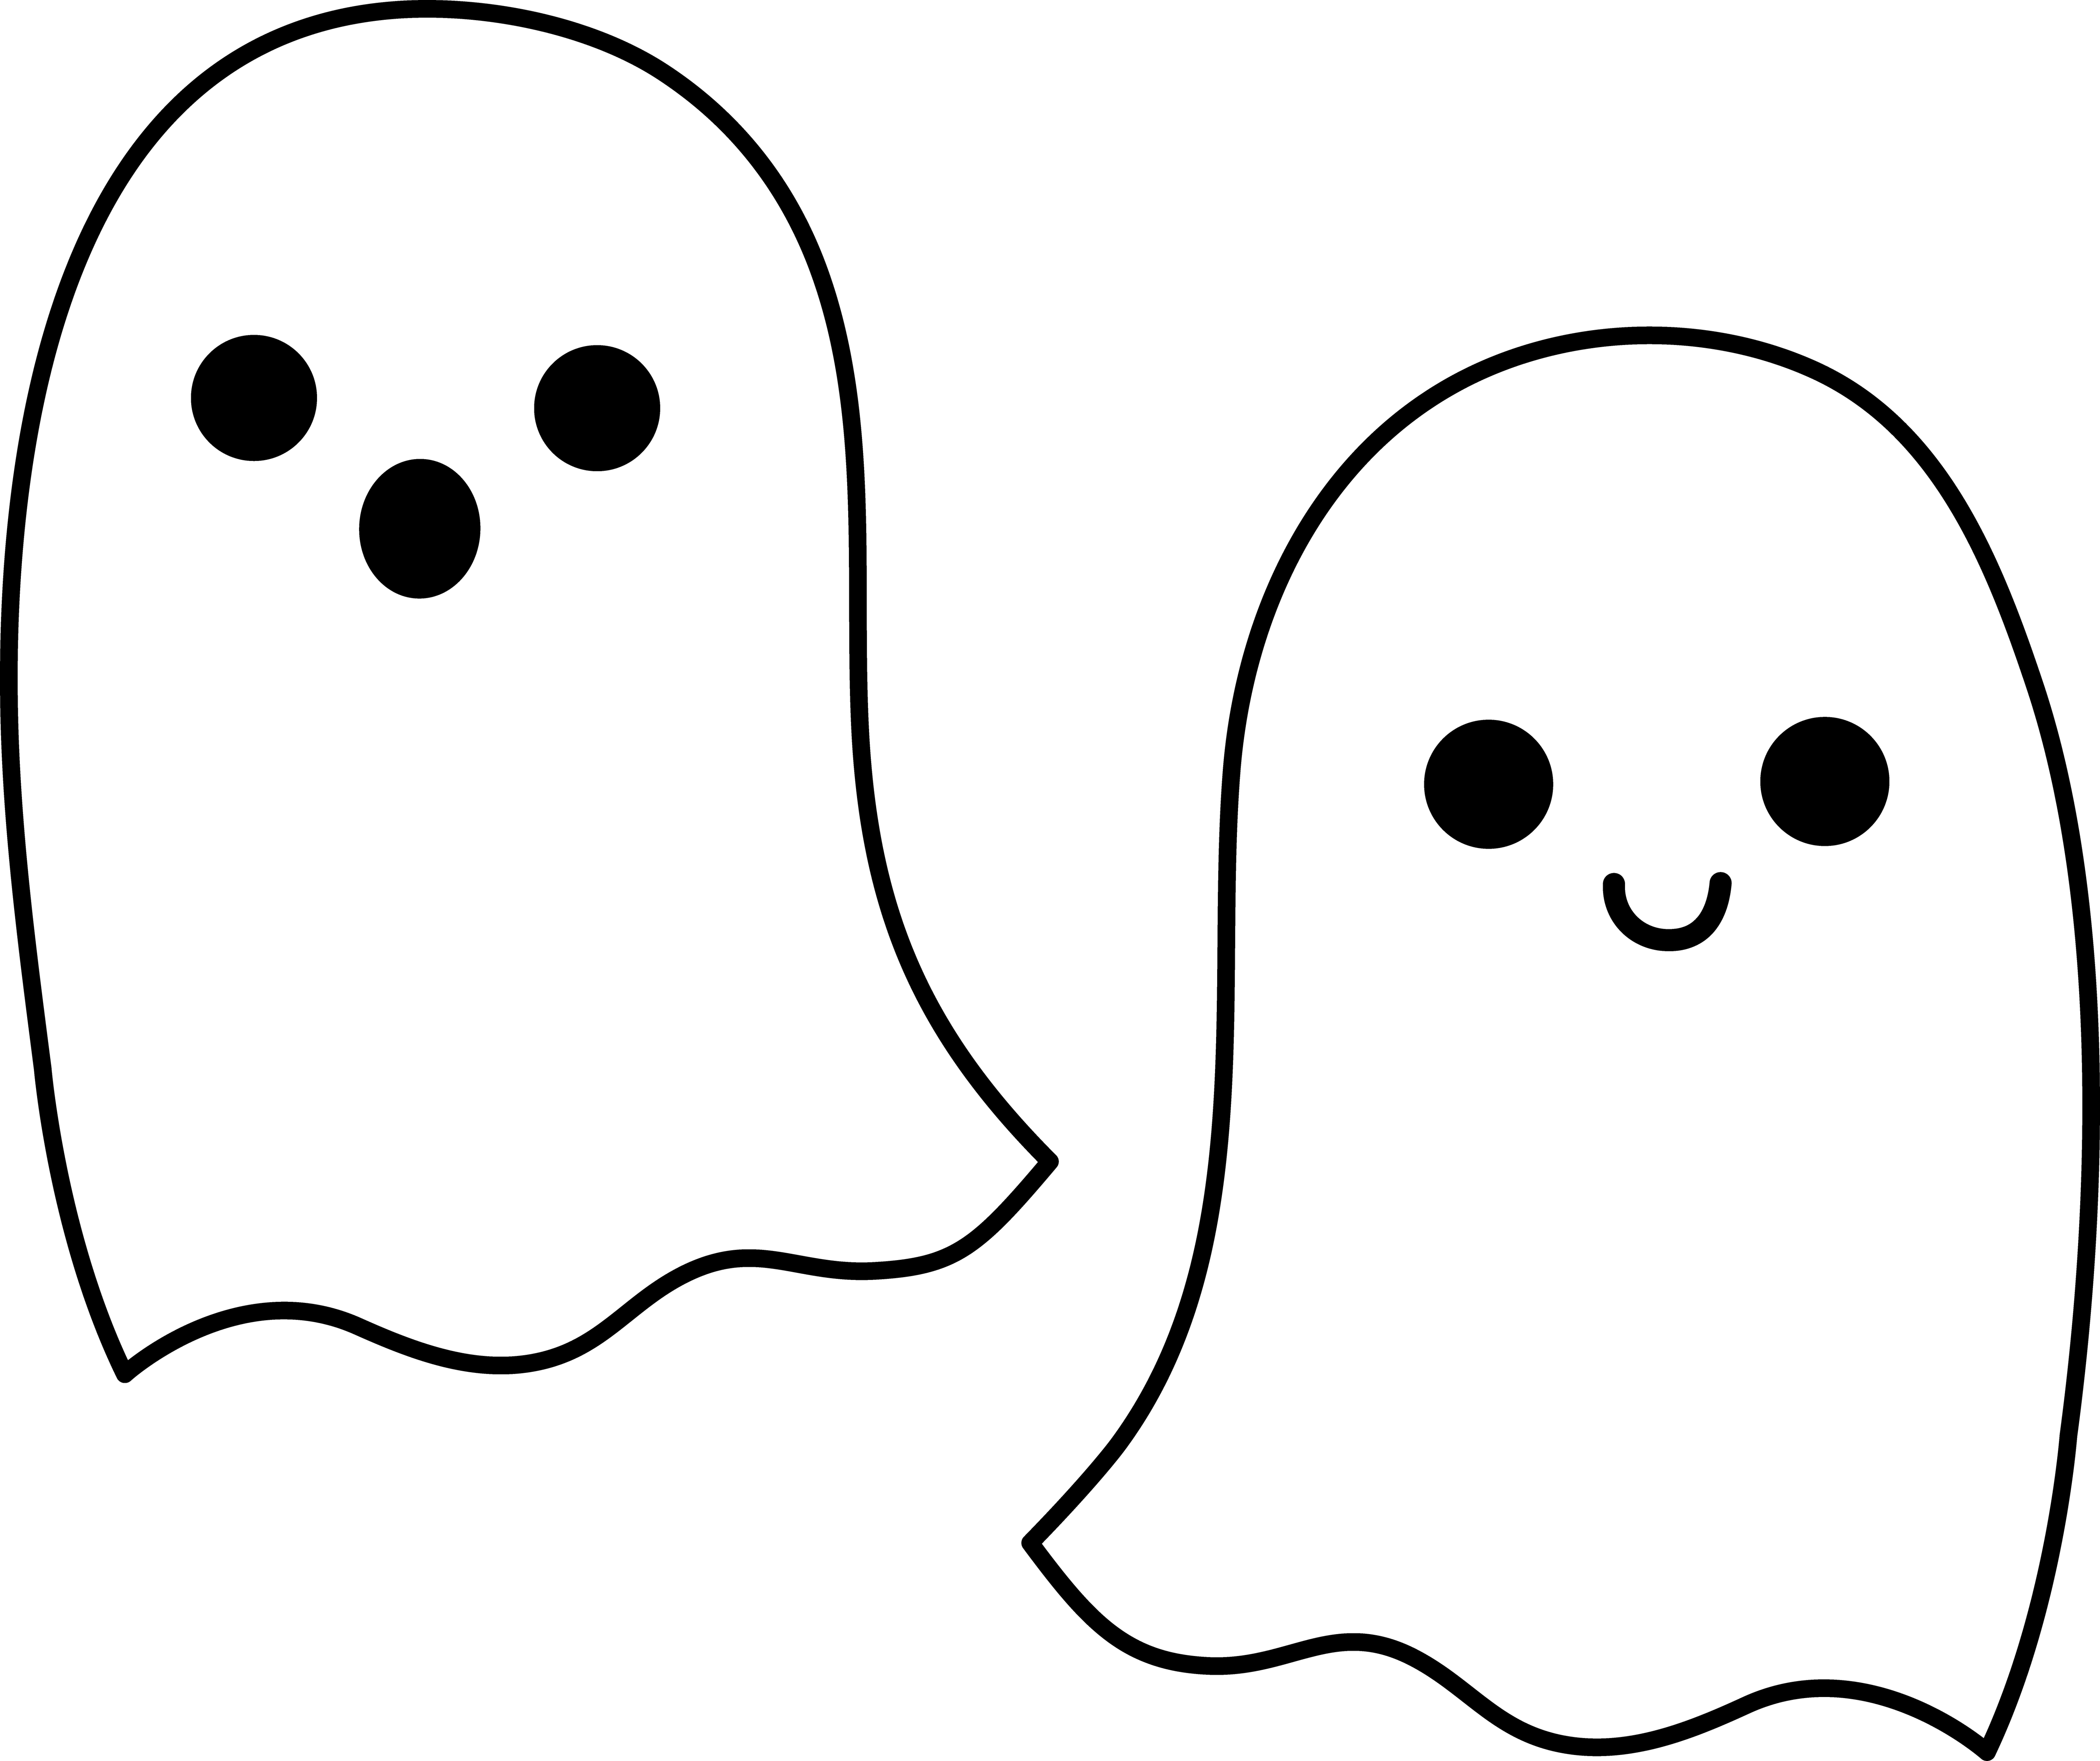 Ghost cartoon png. Download free transparent image